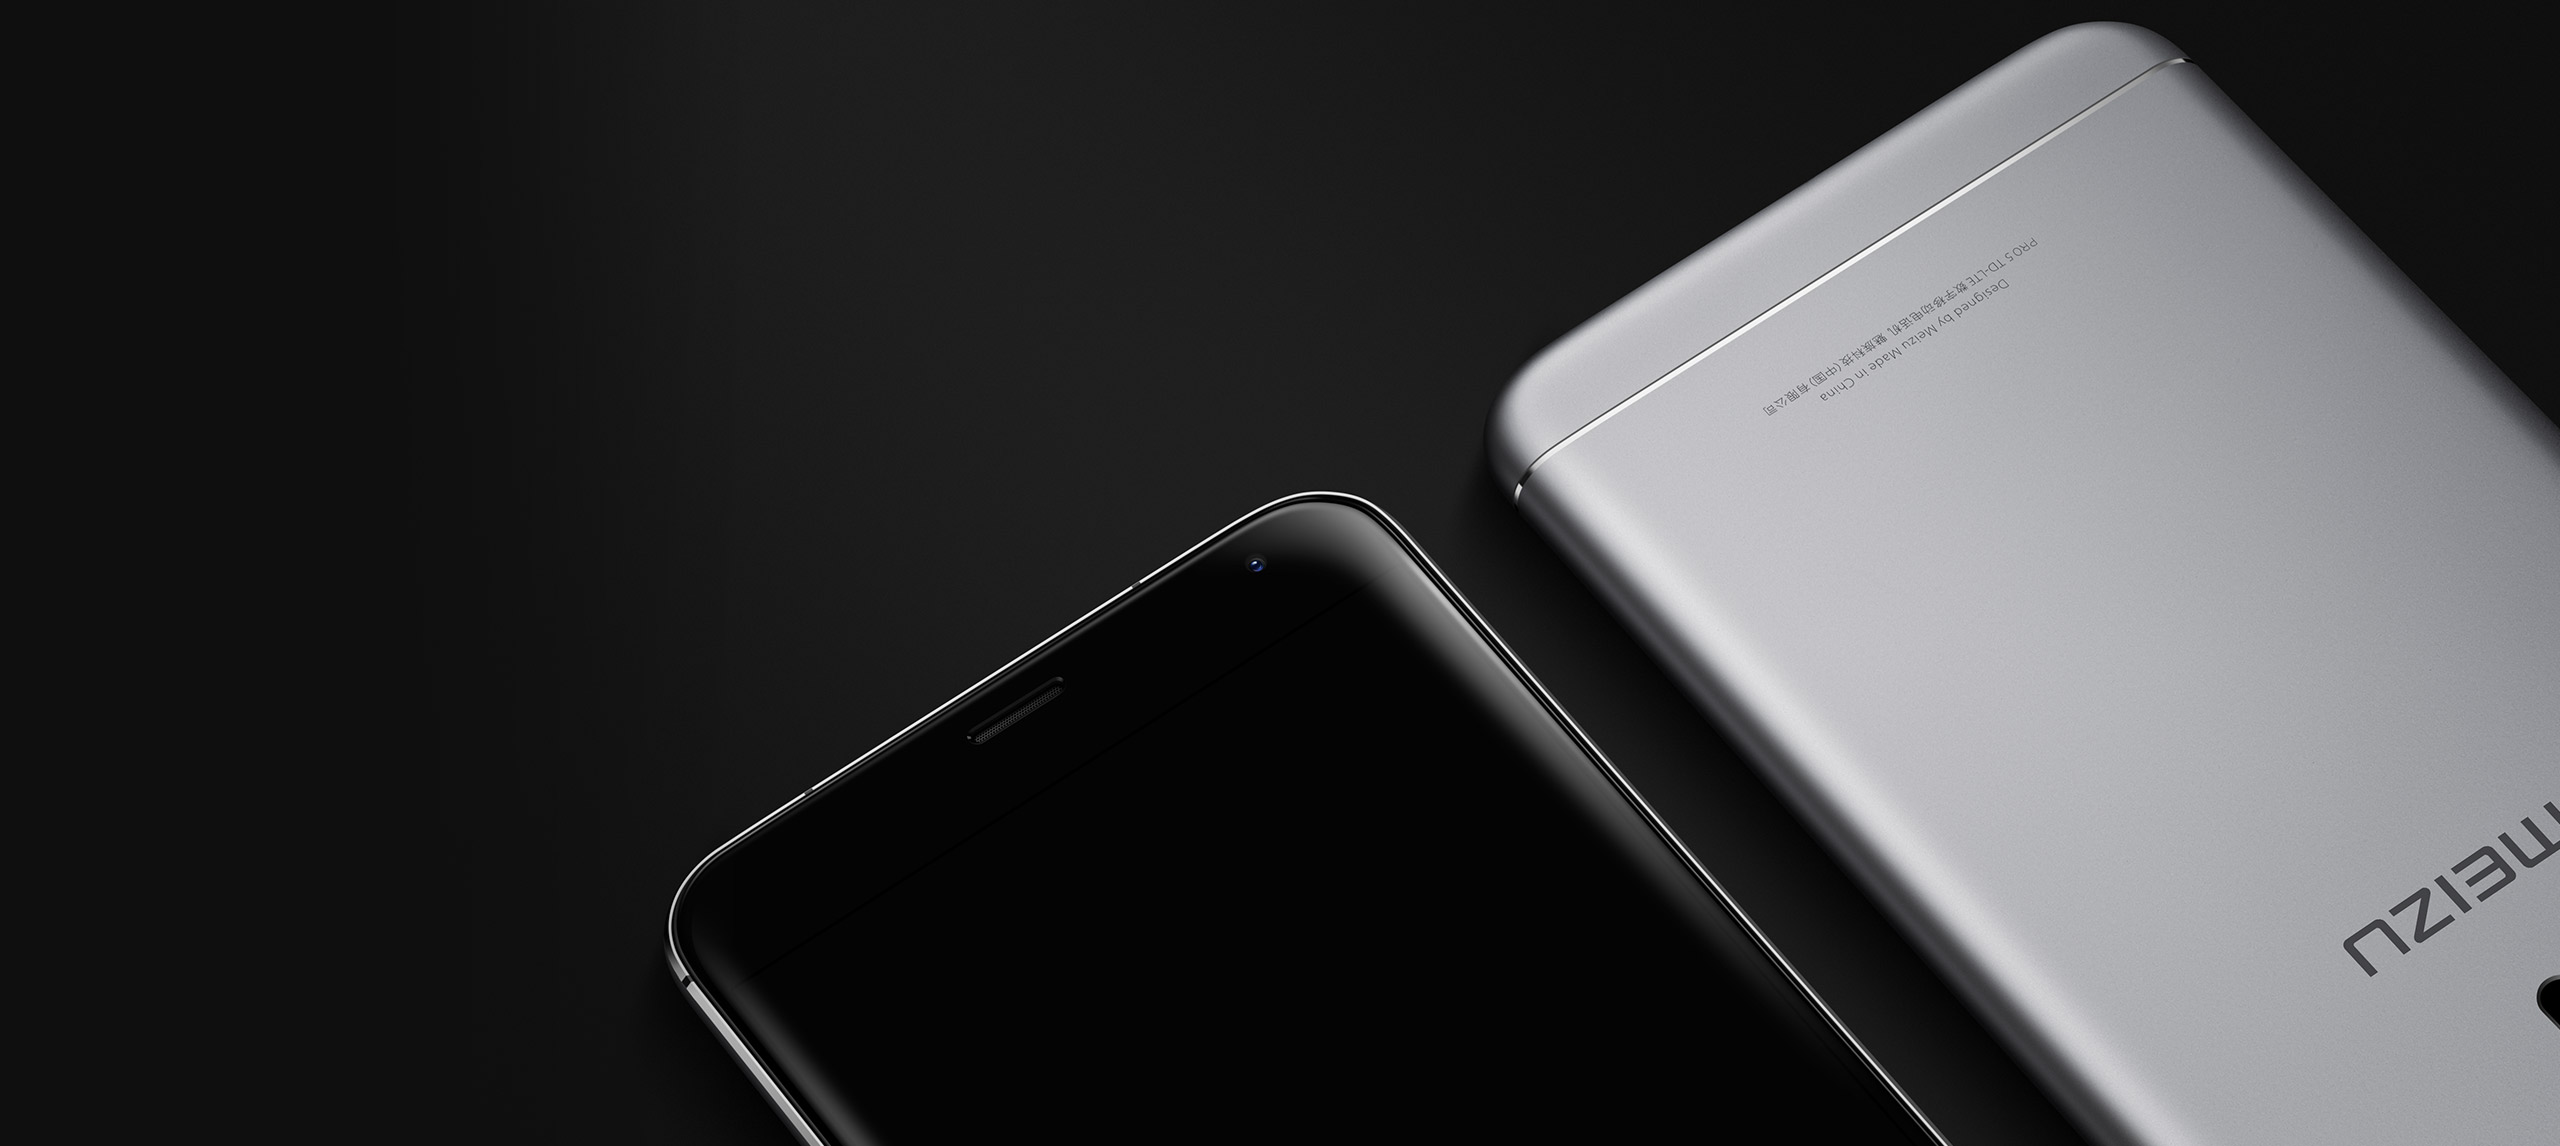 Analyst does not believe that Helio X20 version of Meizu PRO 5 will enter the market